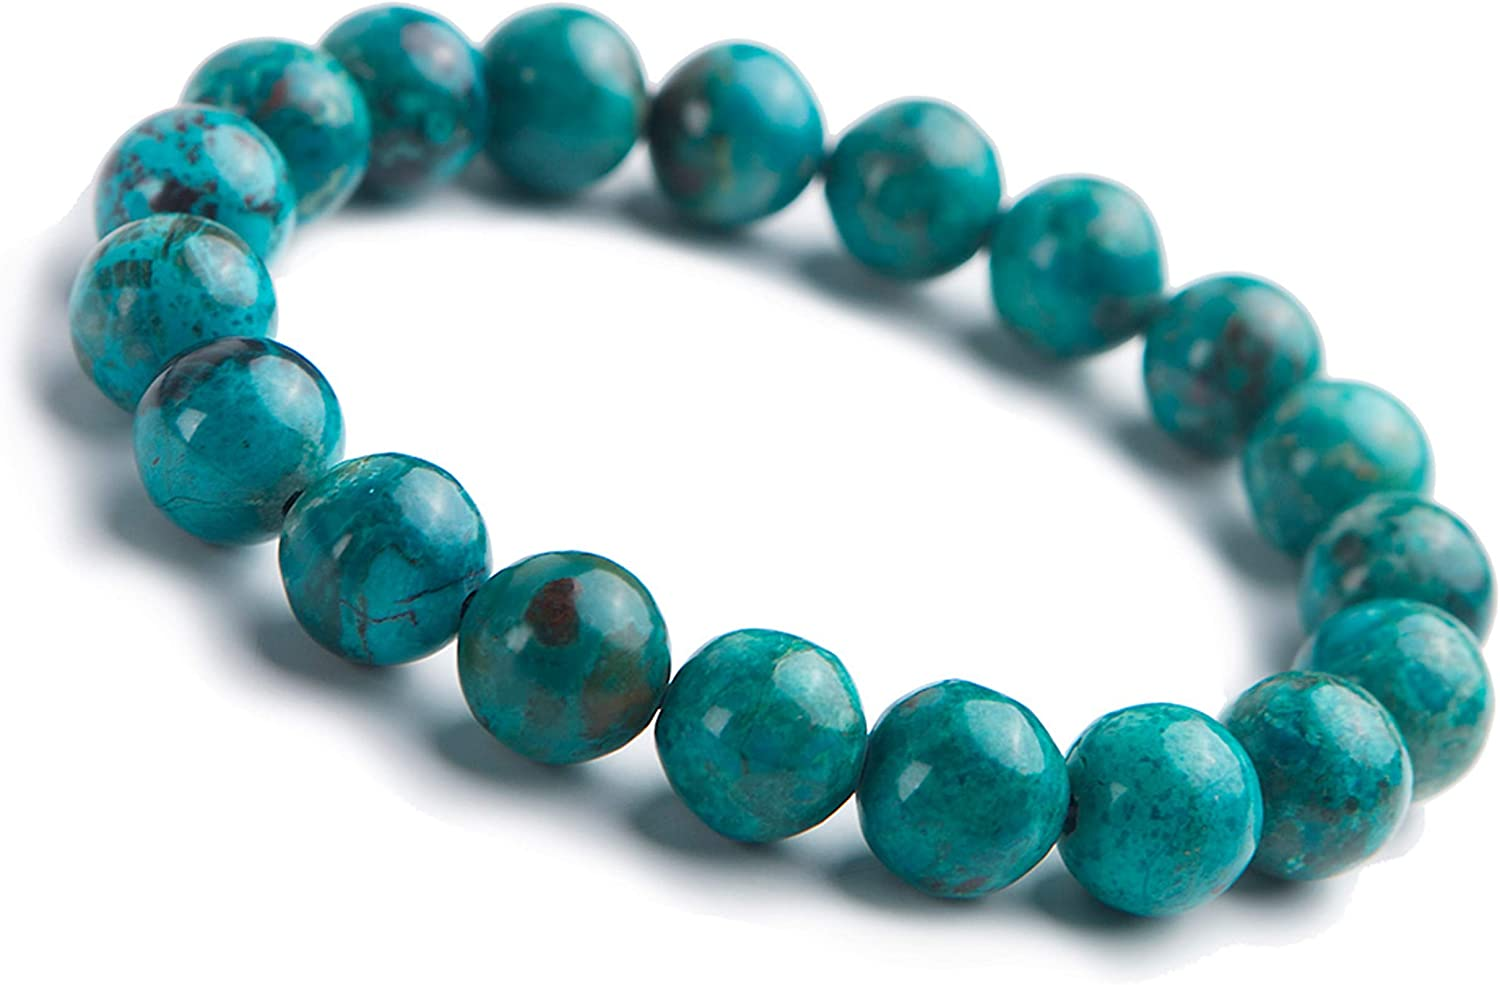 Attractive Top Grade Quality 100/% Natural Chrysocolla Malachite Fancy Shape Cabochon Gemstone For Making Jewelry 41 Ct 35X21X6 mm AA-7462